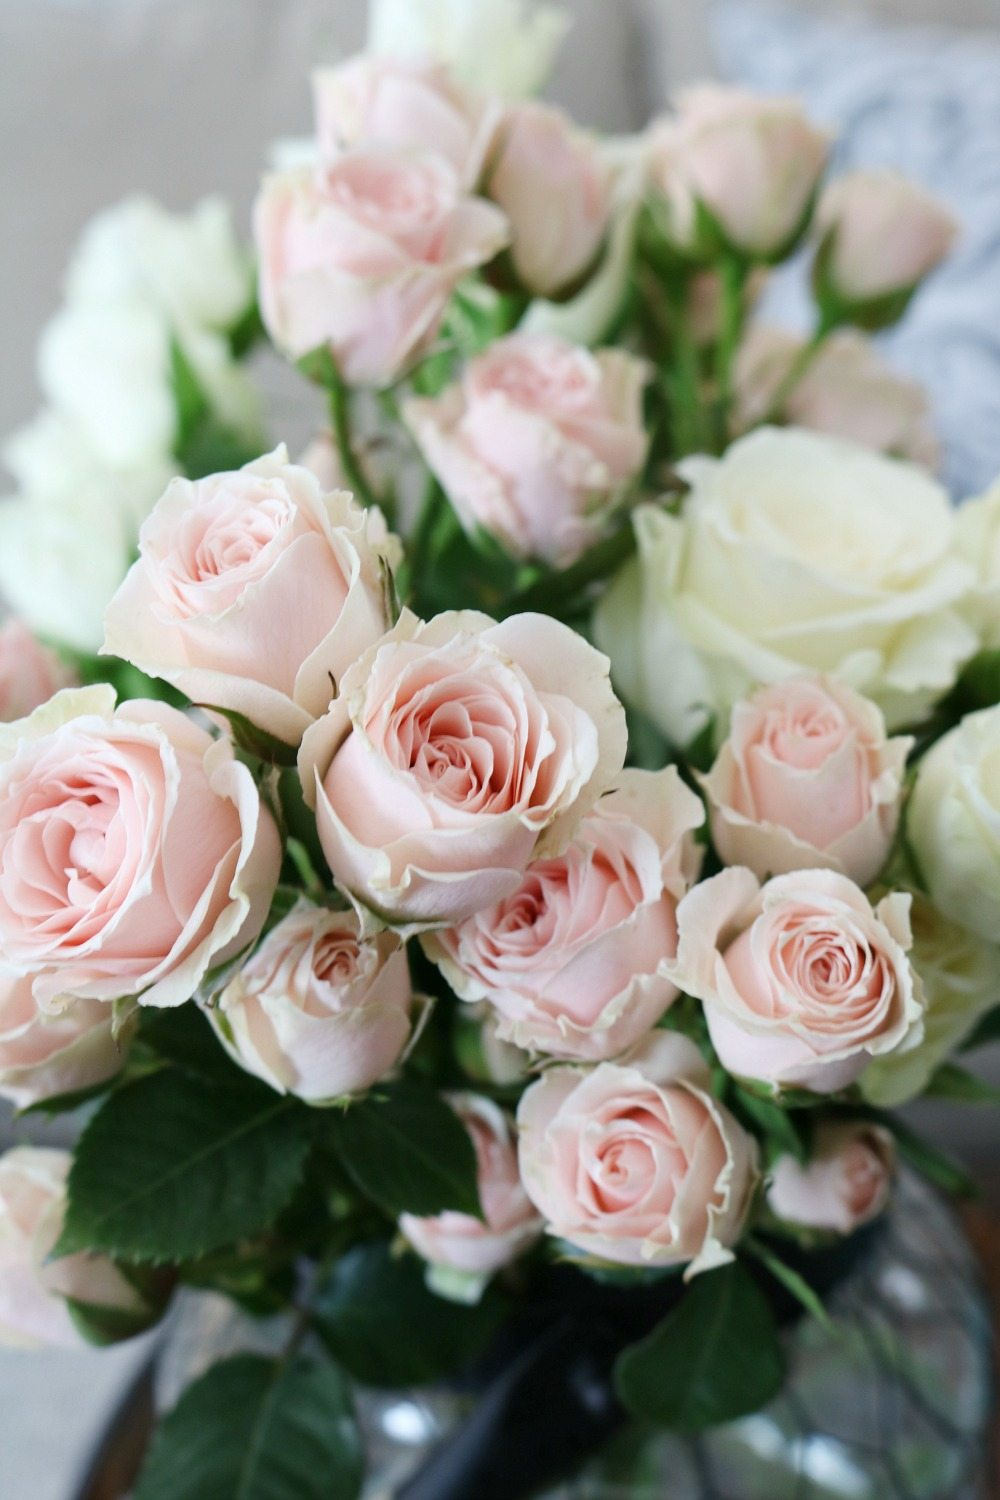 Blush colored roses are perfect for any vase